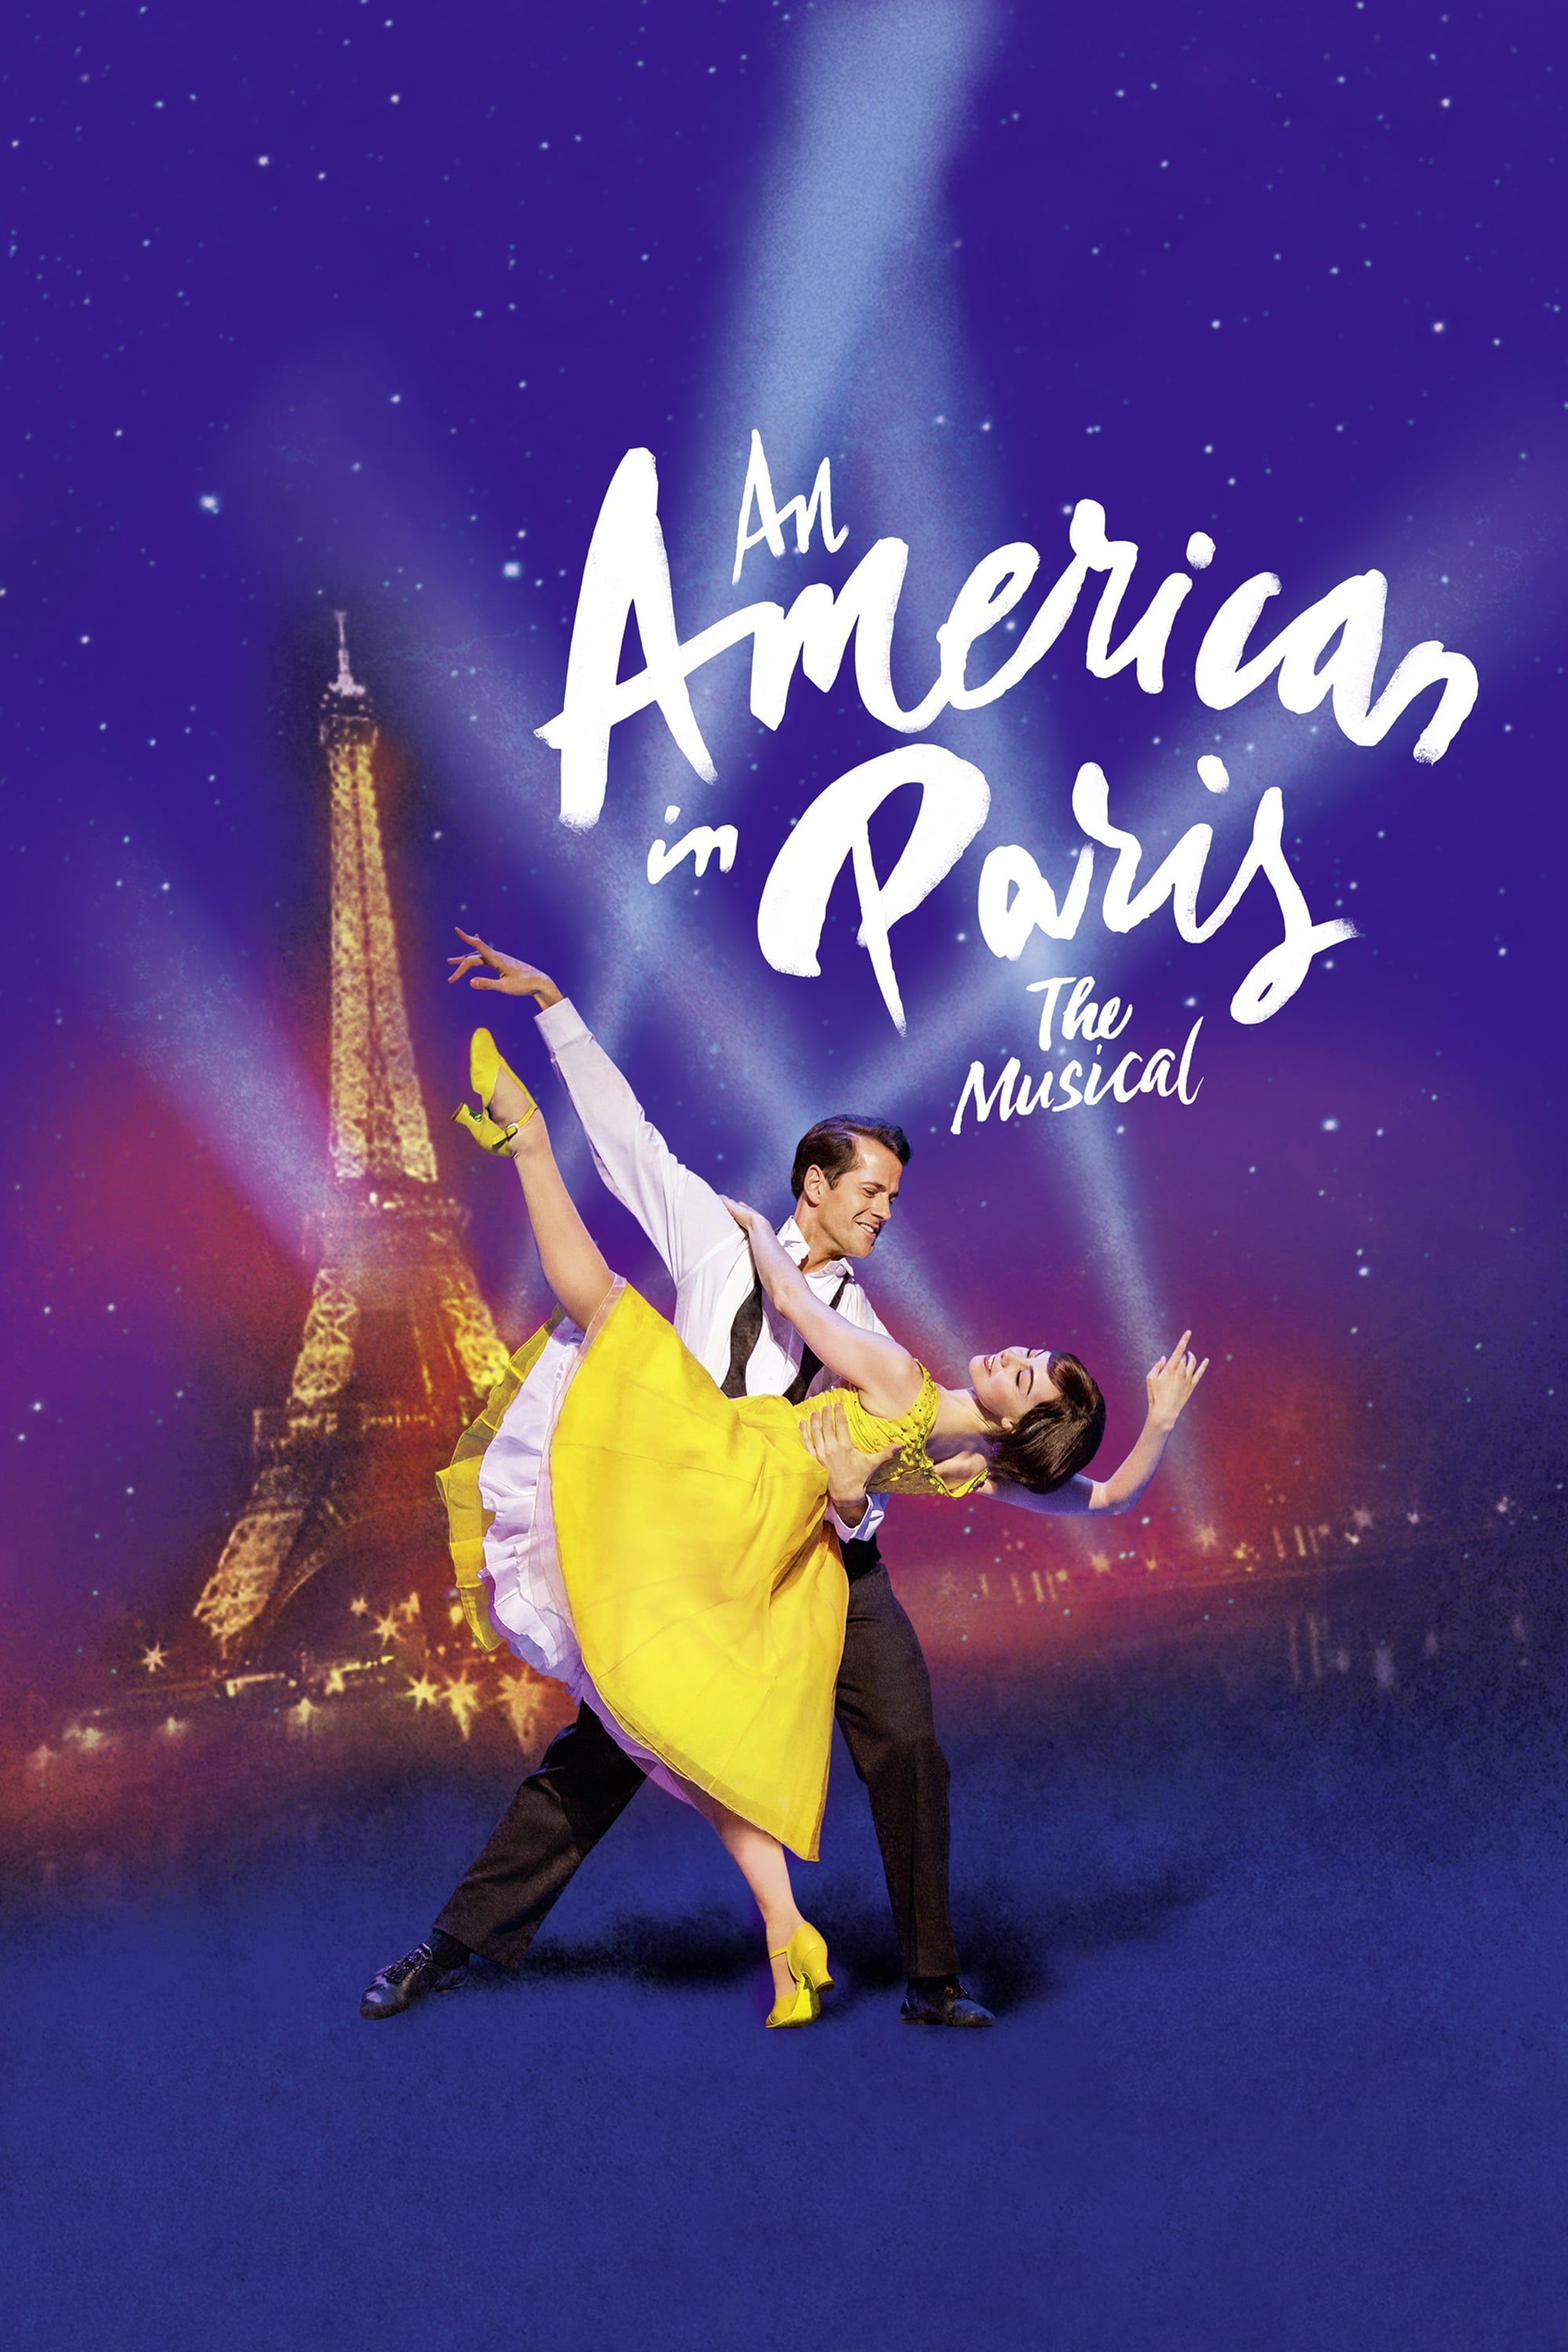 An American in Paris The Musical (2018) free